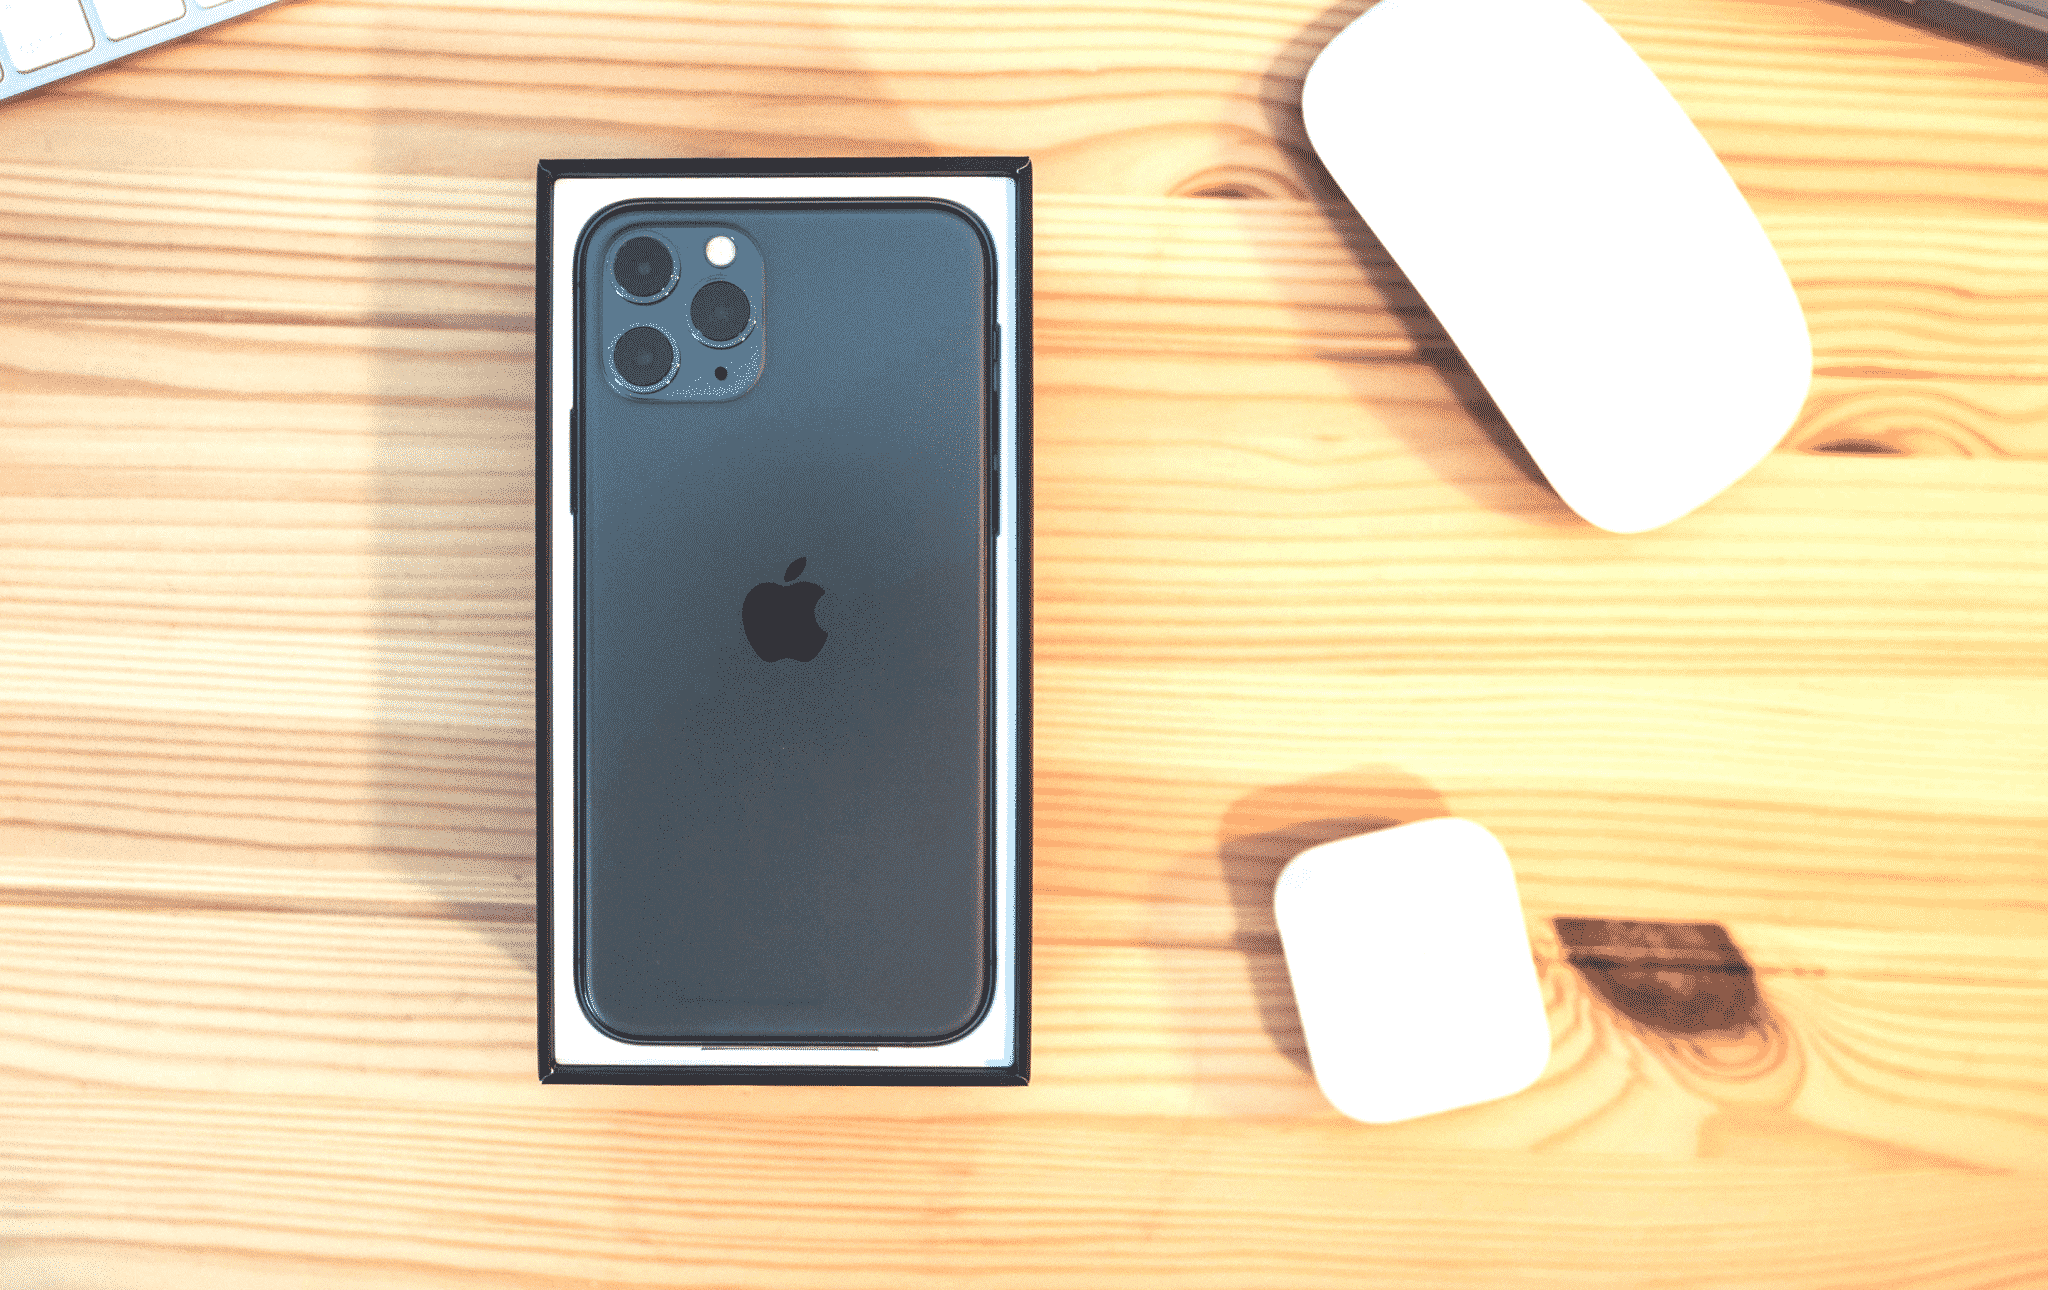 Apple iOS13 security privacy features